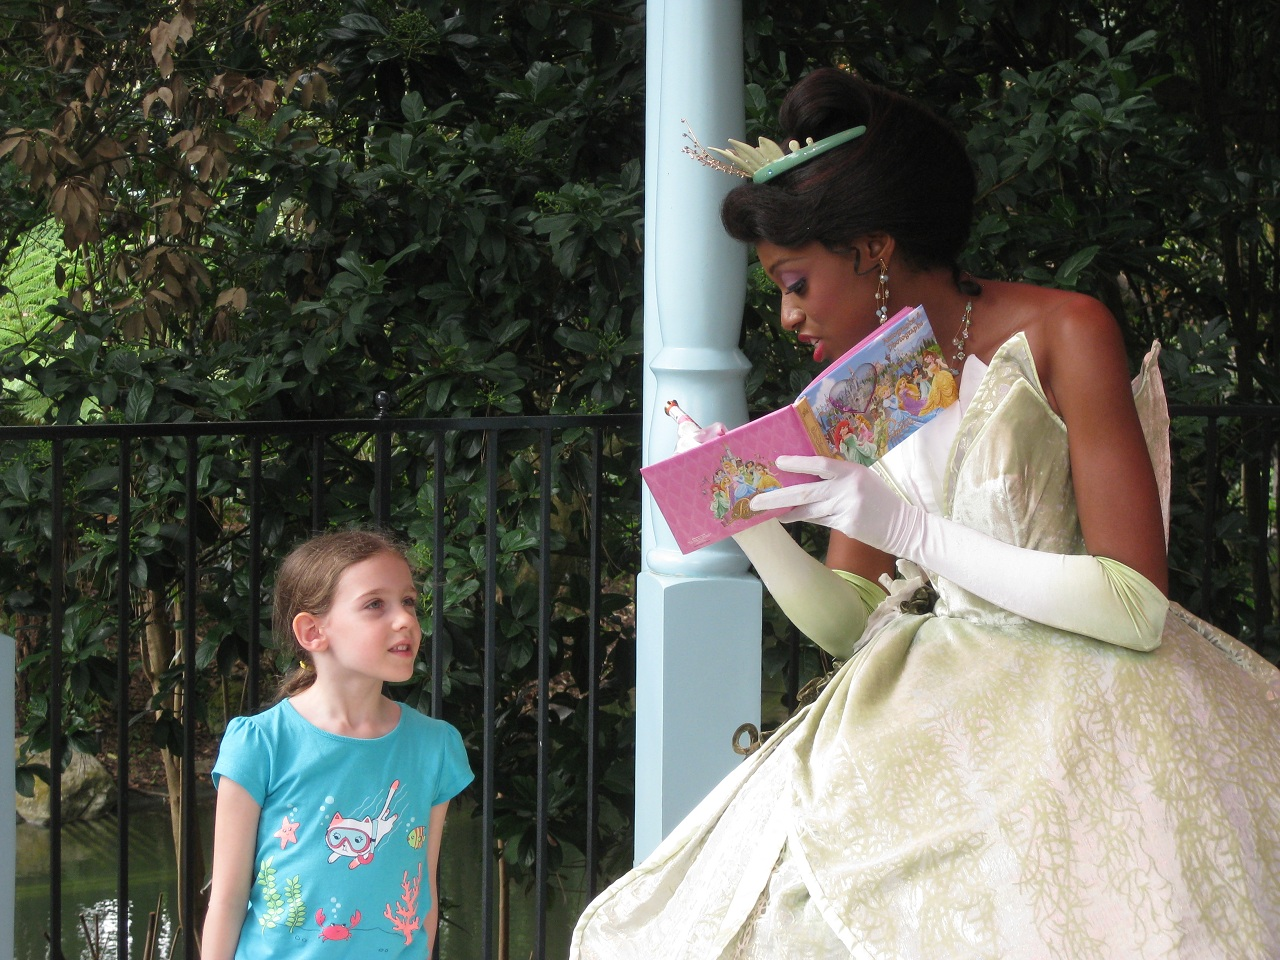 Disney World Ultimate Princess Meet And Greet Guide The Pixie Dust